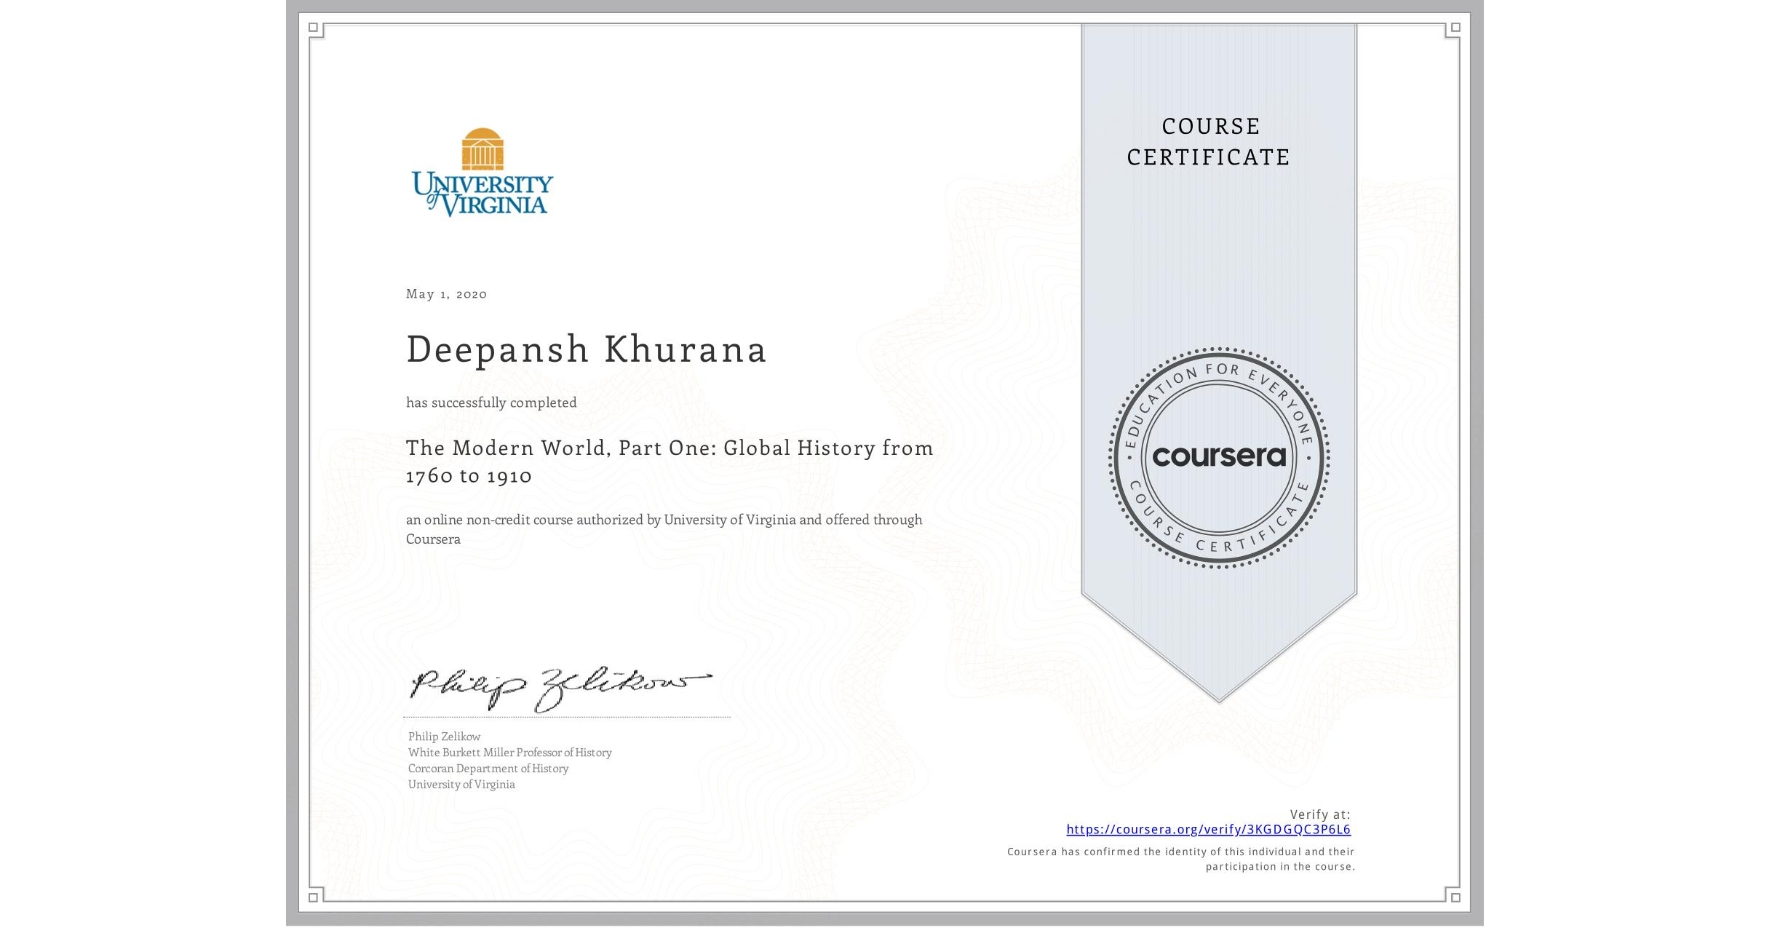 View certificate for Deepansh Khurana, The Modern World, Part One: Global History from 1760 to 1910, an online non-credit course authorized by University of Virginia and offered through Coursera